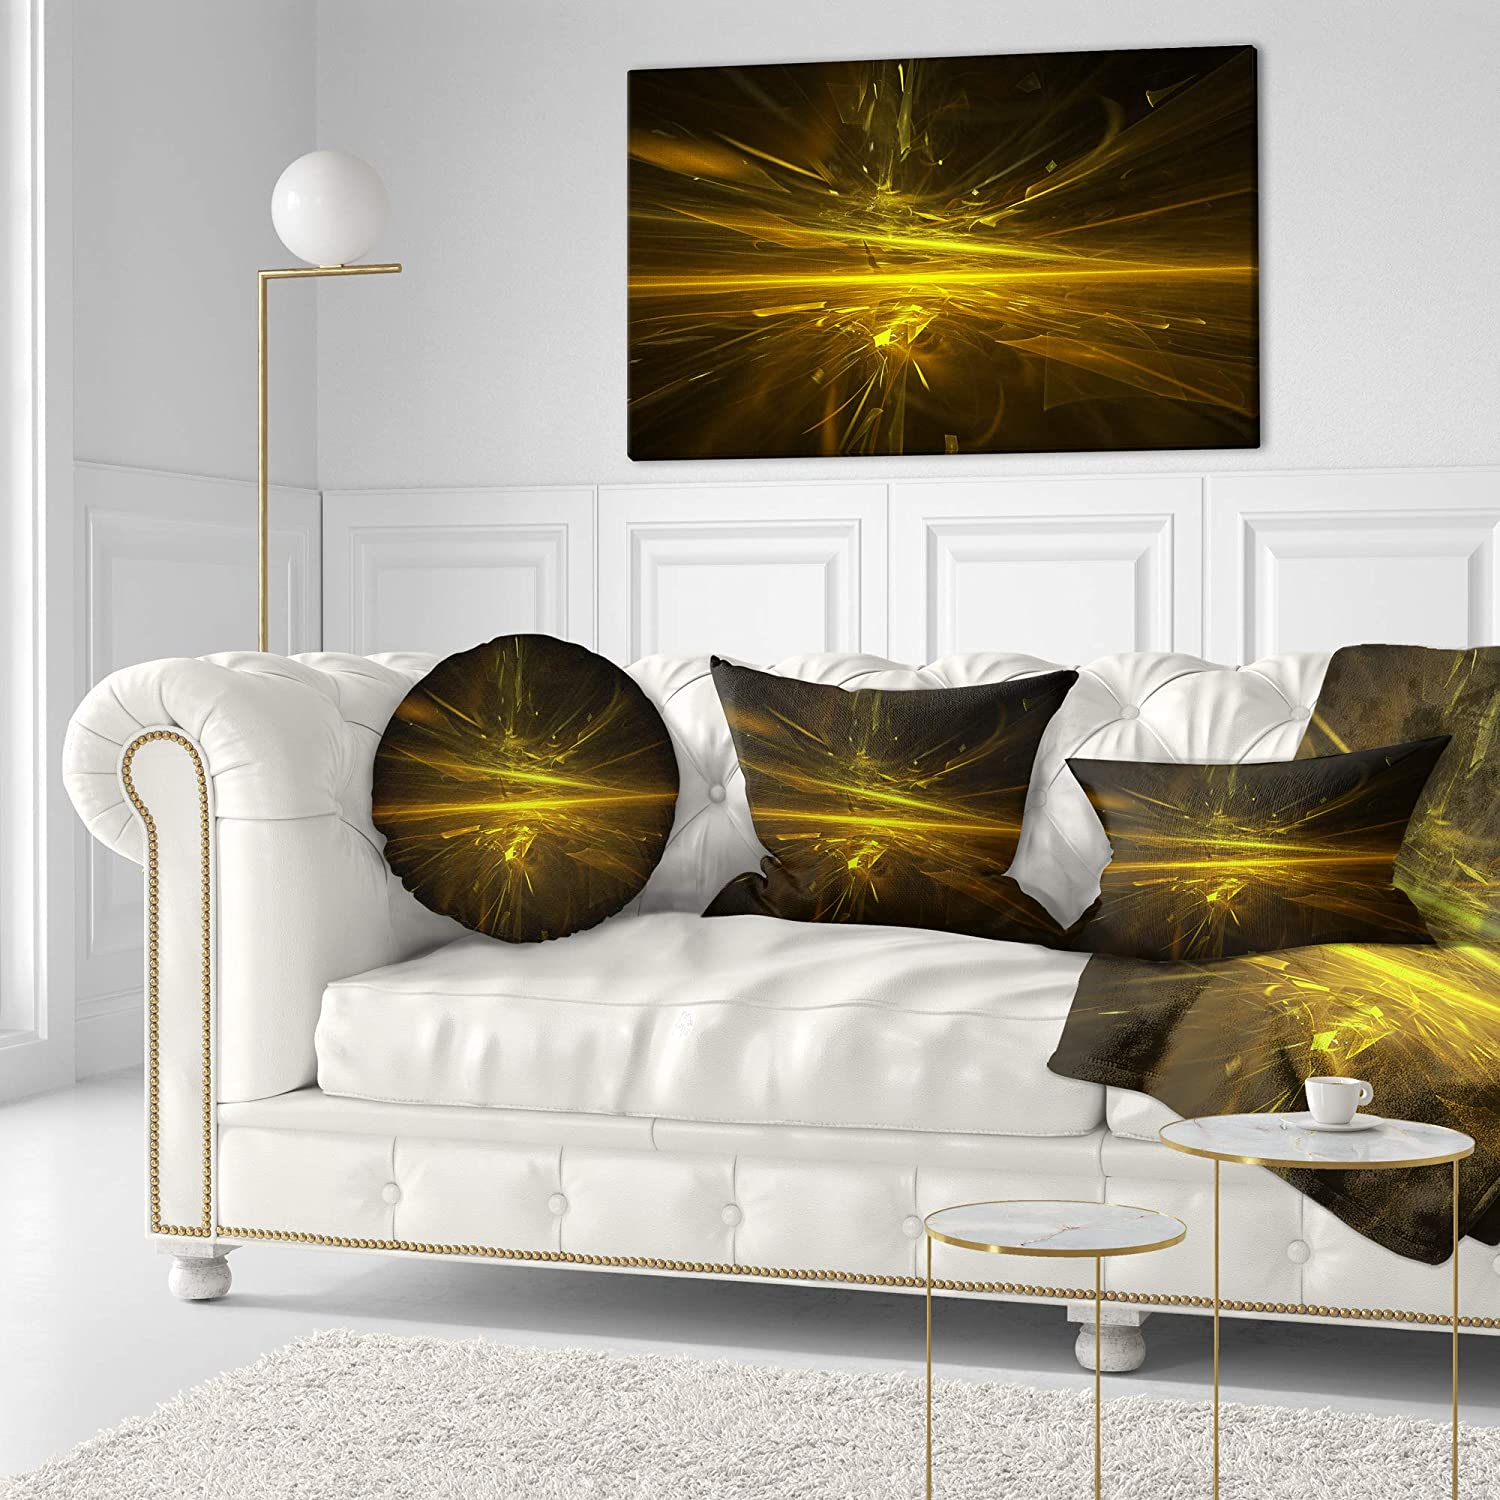 Sofa Throw Pillow 20 Designart CU13041-20-20-C Bright Golden Chaos Fractal Design Contemporary Abstract Round Cushion Cover for Living Room